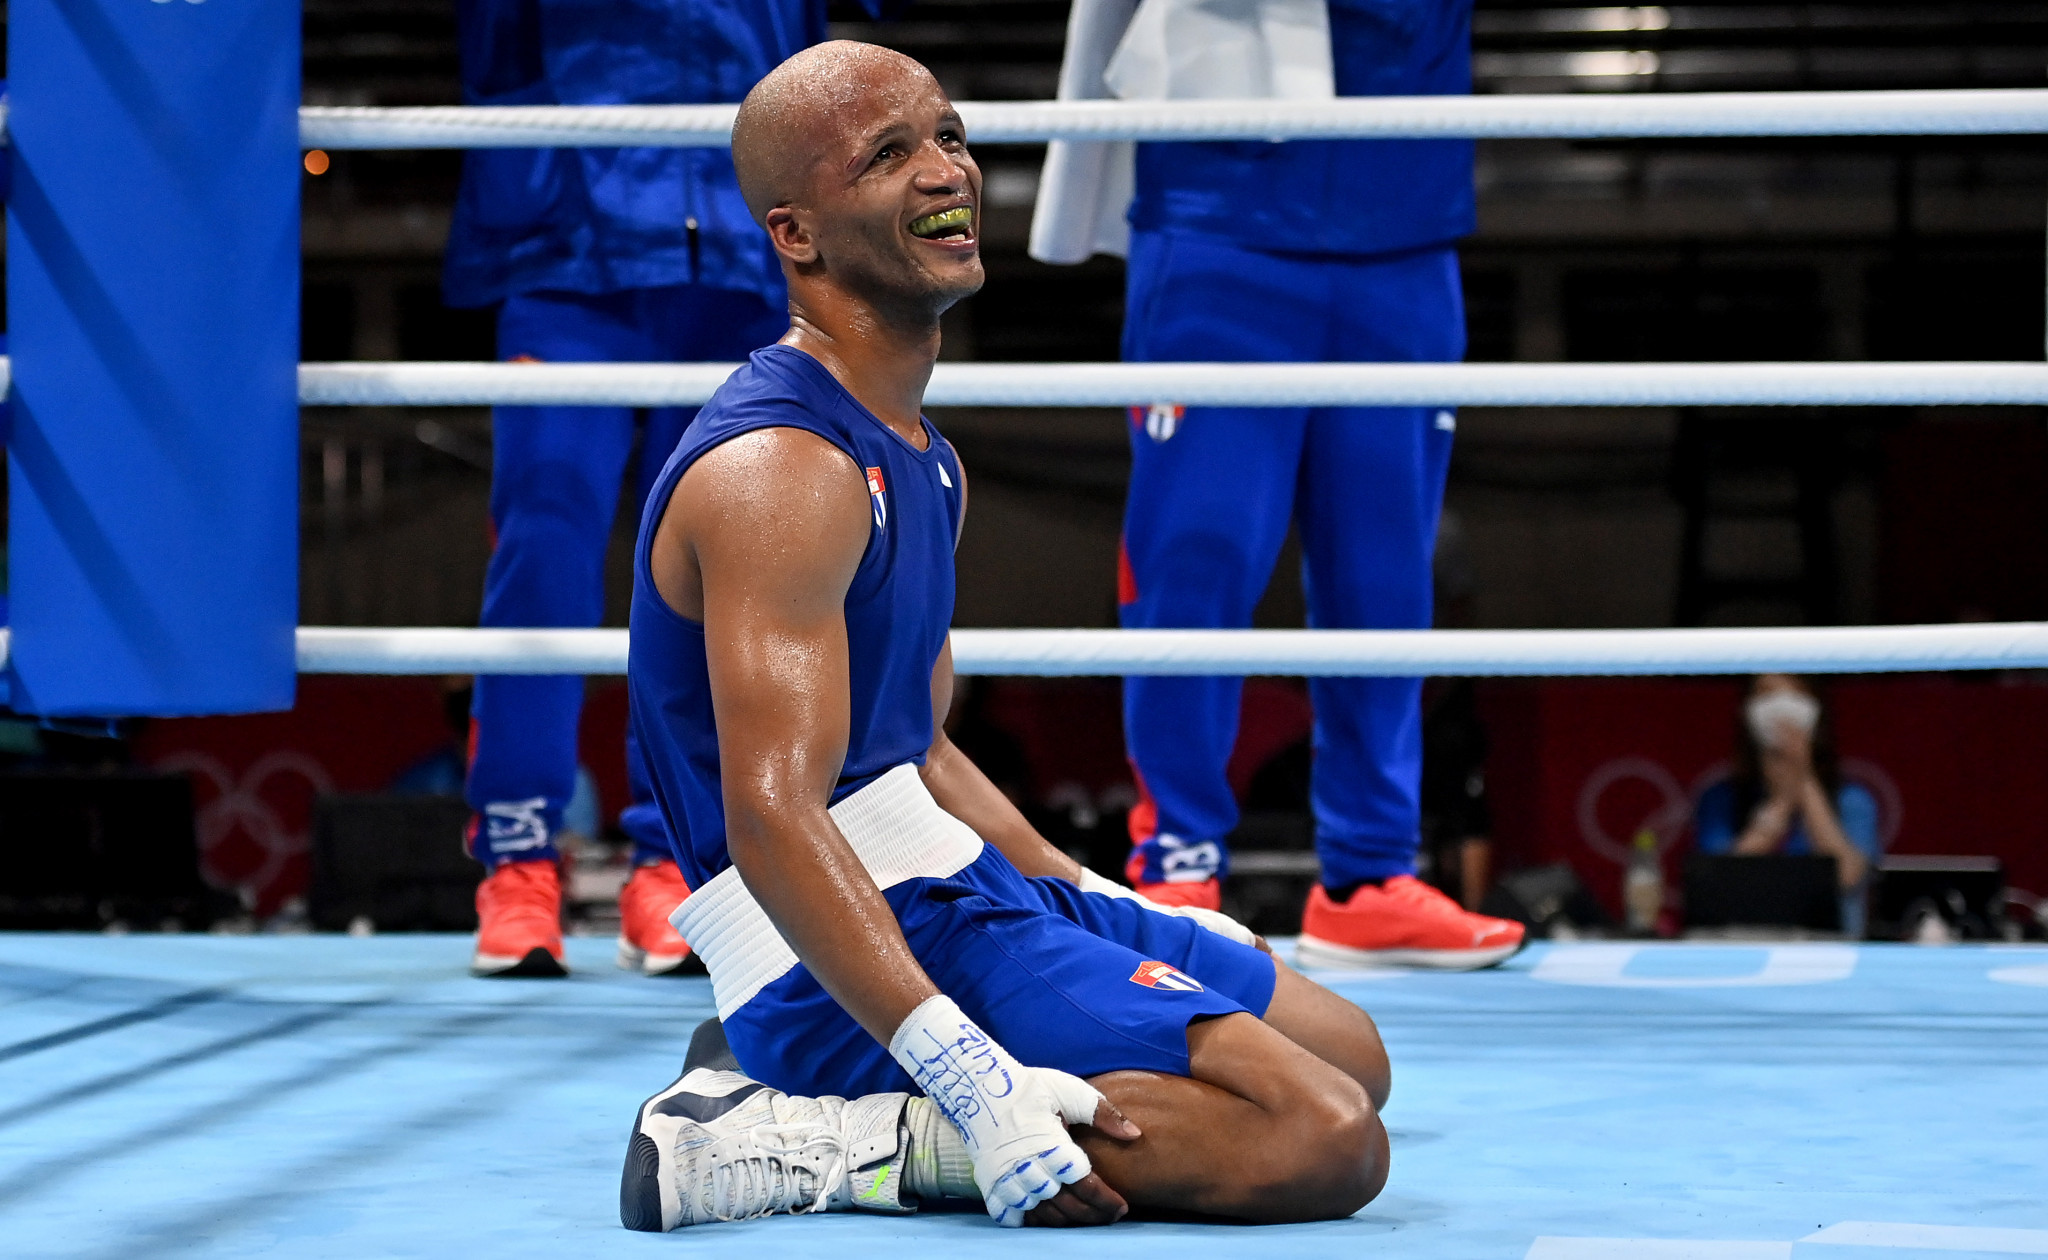 Iglesias wins Olympic welterweight boxing gold after defeating world champion